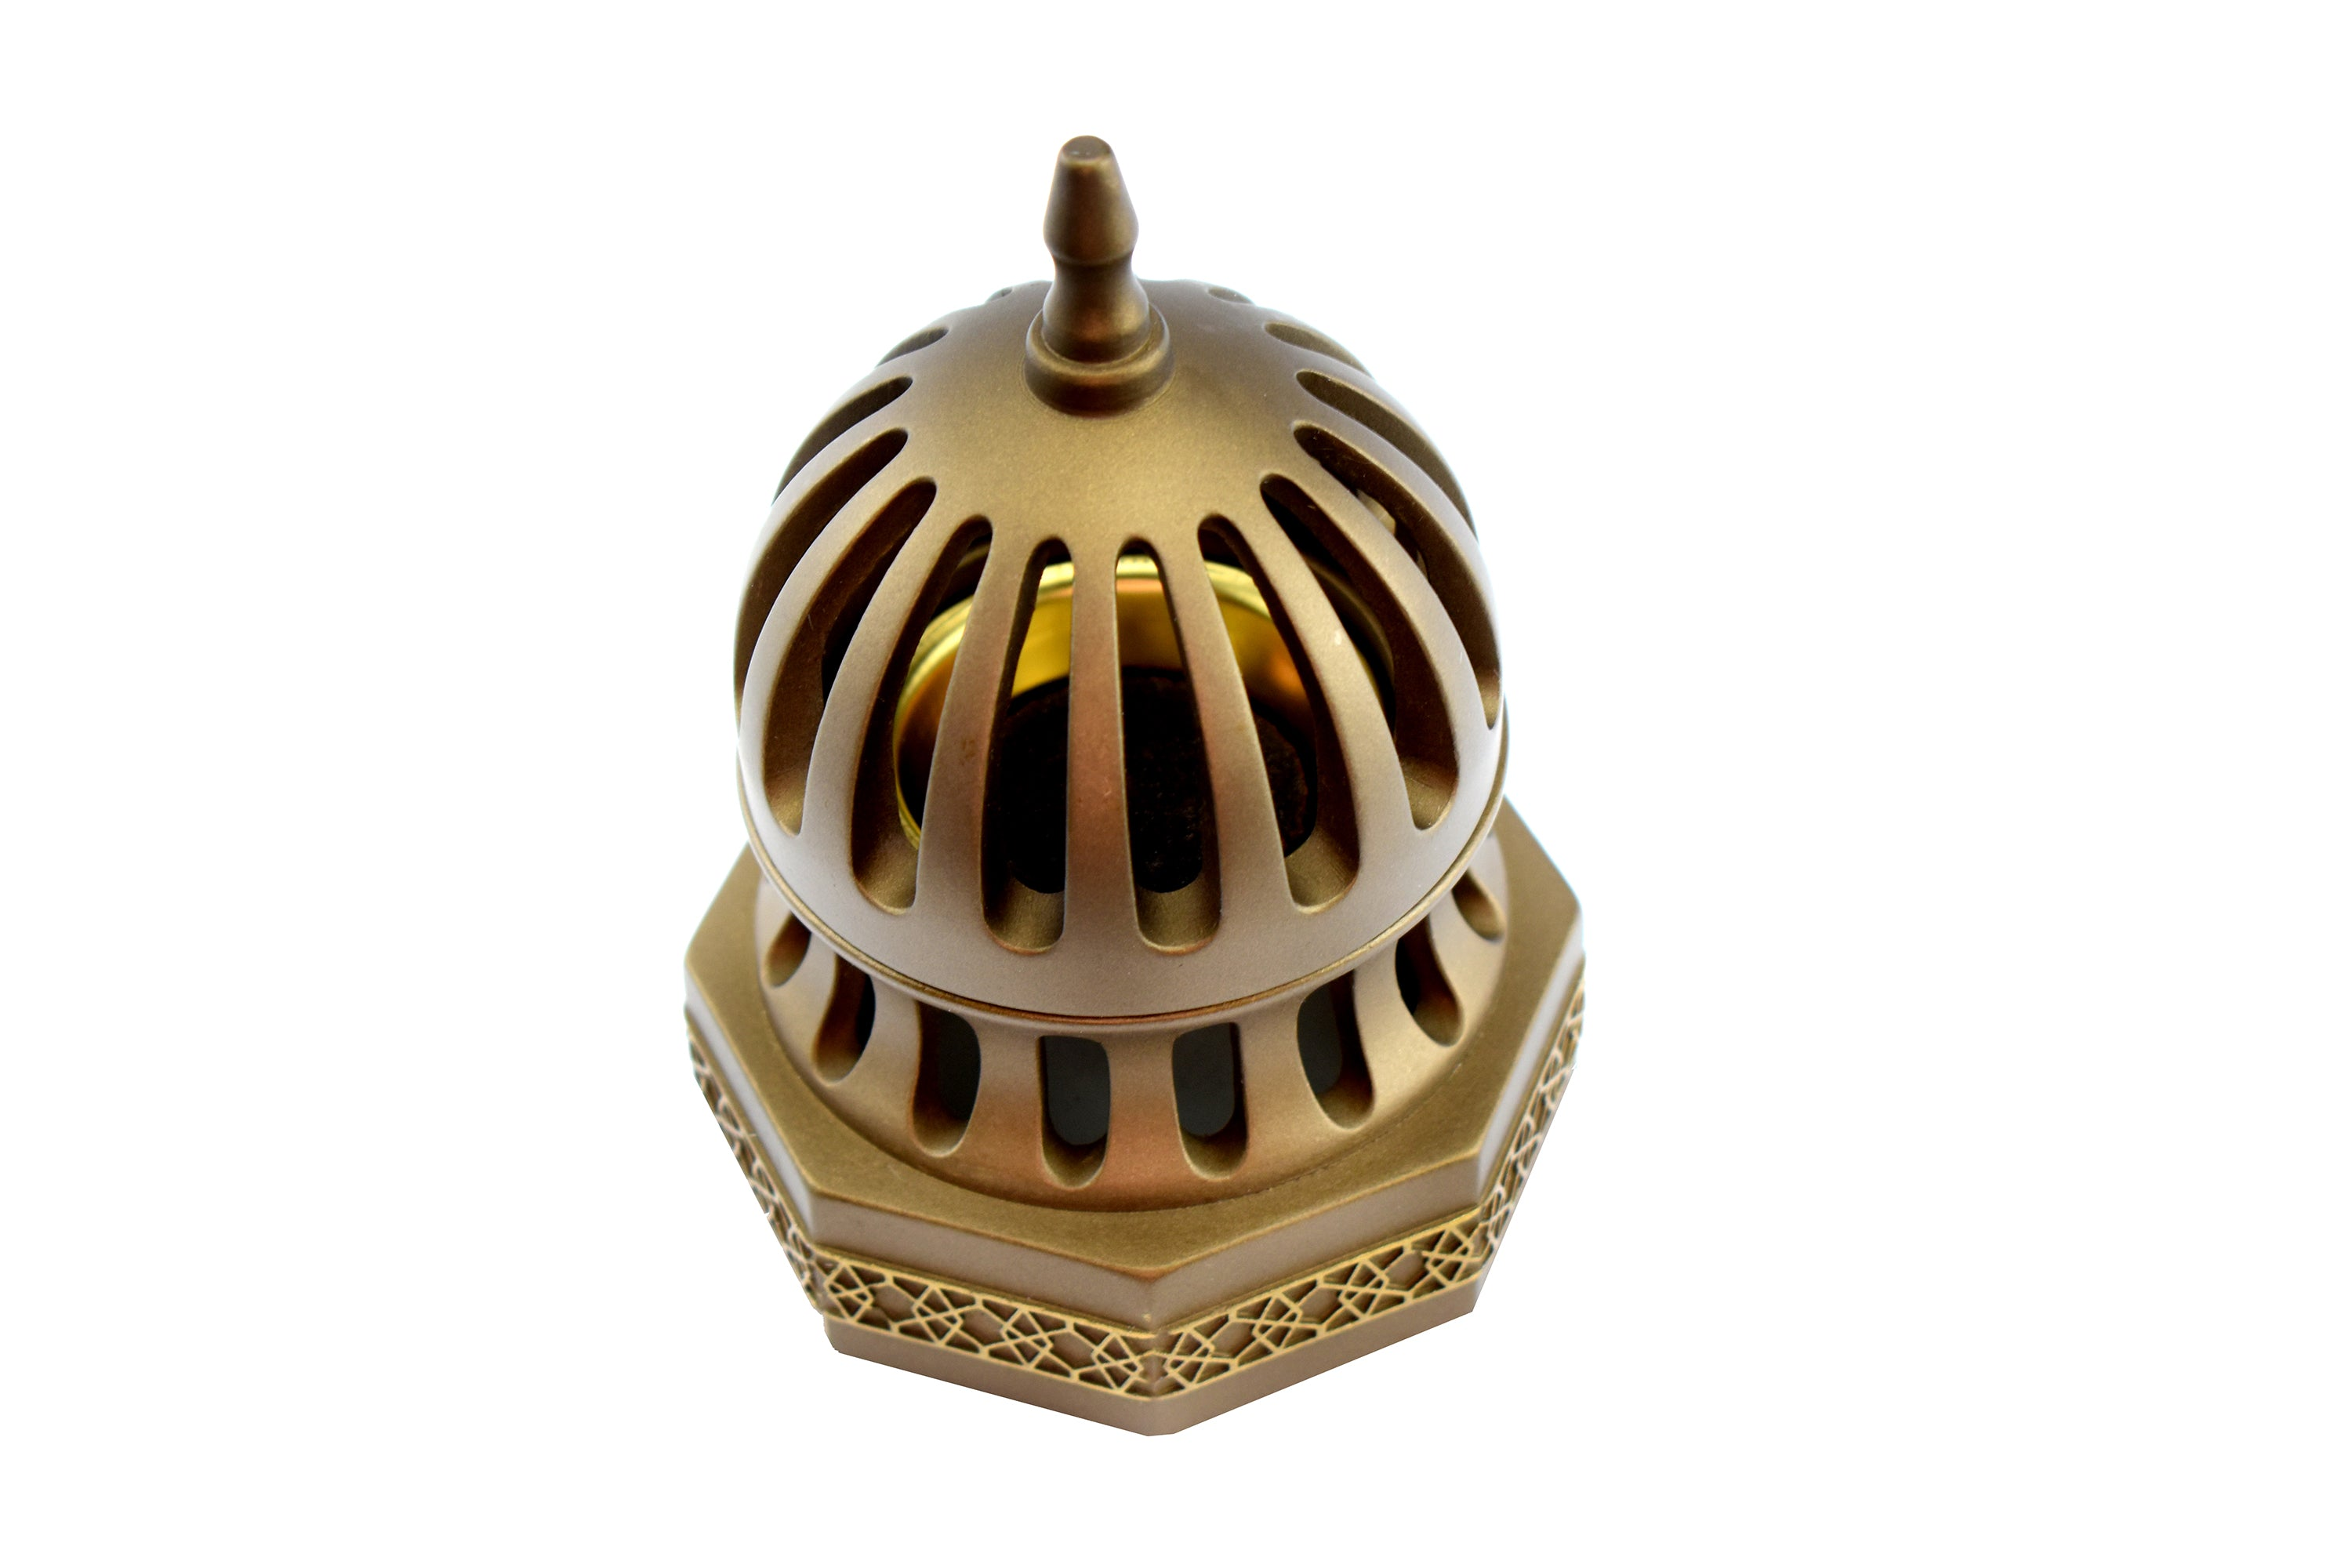 Classic Traditional Dome Style Closed Incense Bakhoor Burner - Gold - Intense oud